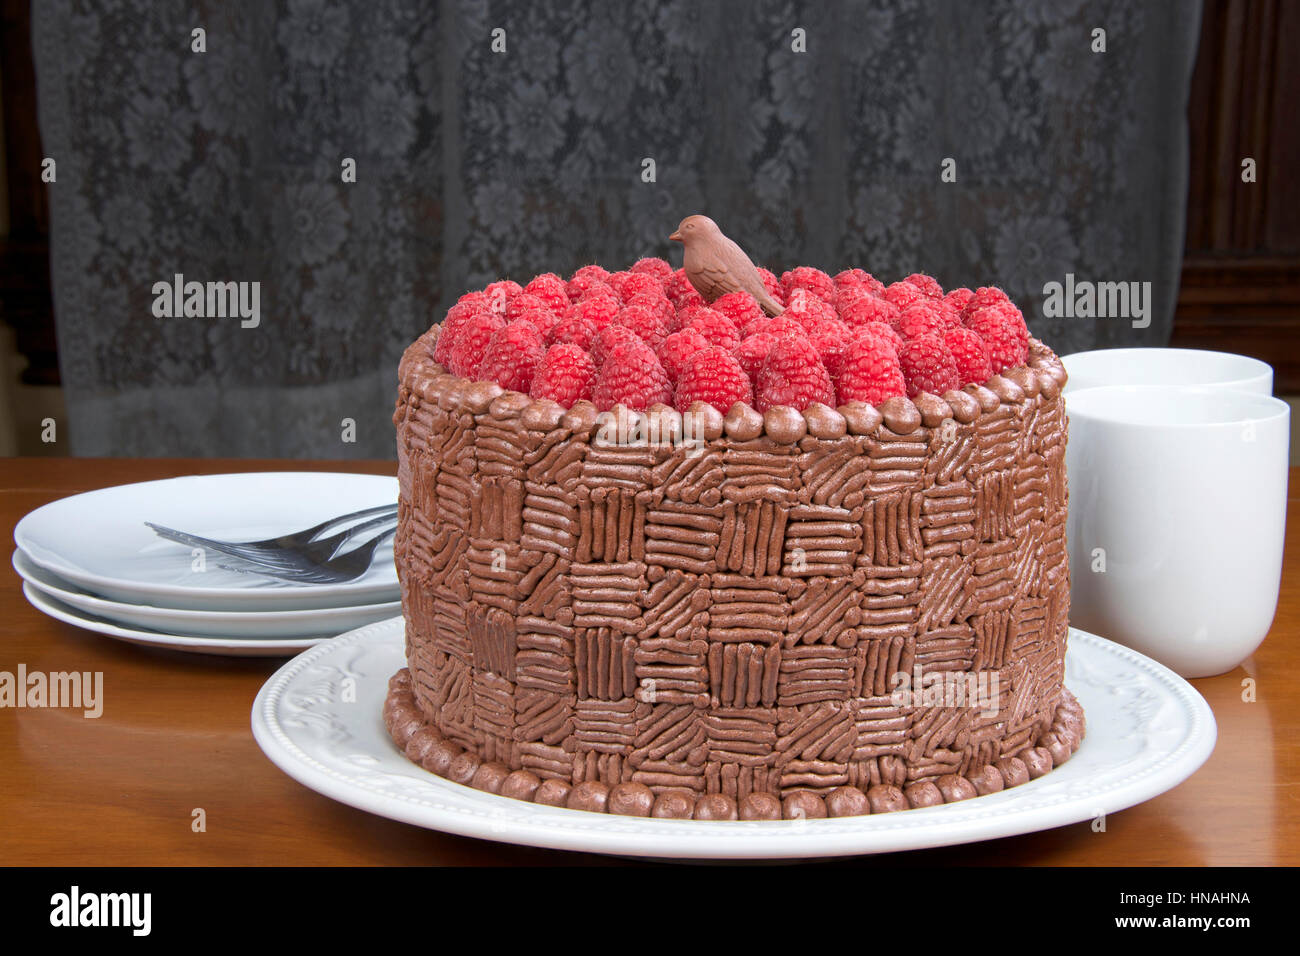 Home Made Original Design Chocolate Cake With Fresh Raspberries On Stock Photo Alamy